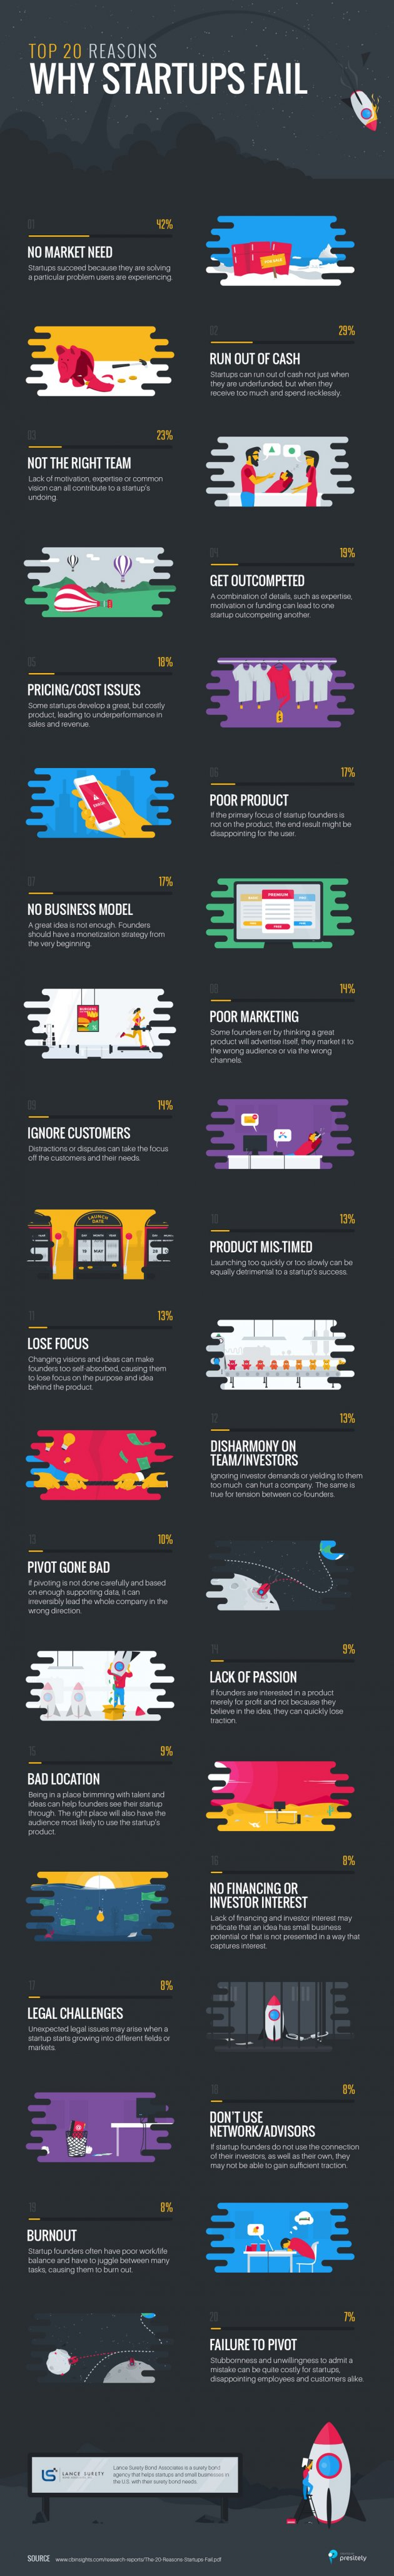 Why businesses fail infographic